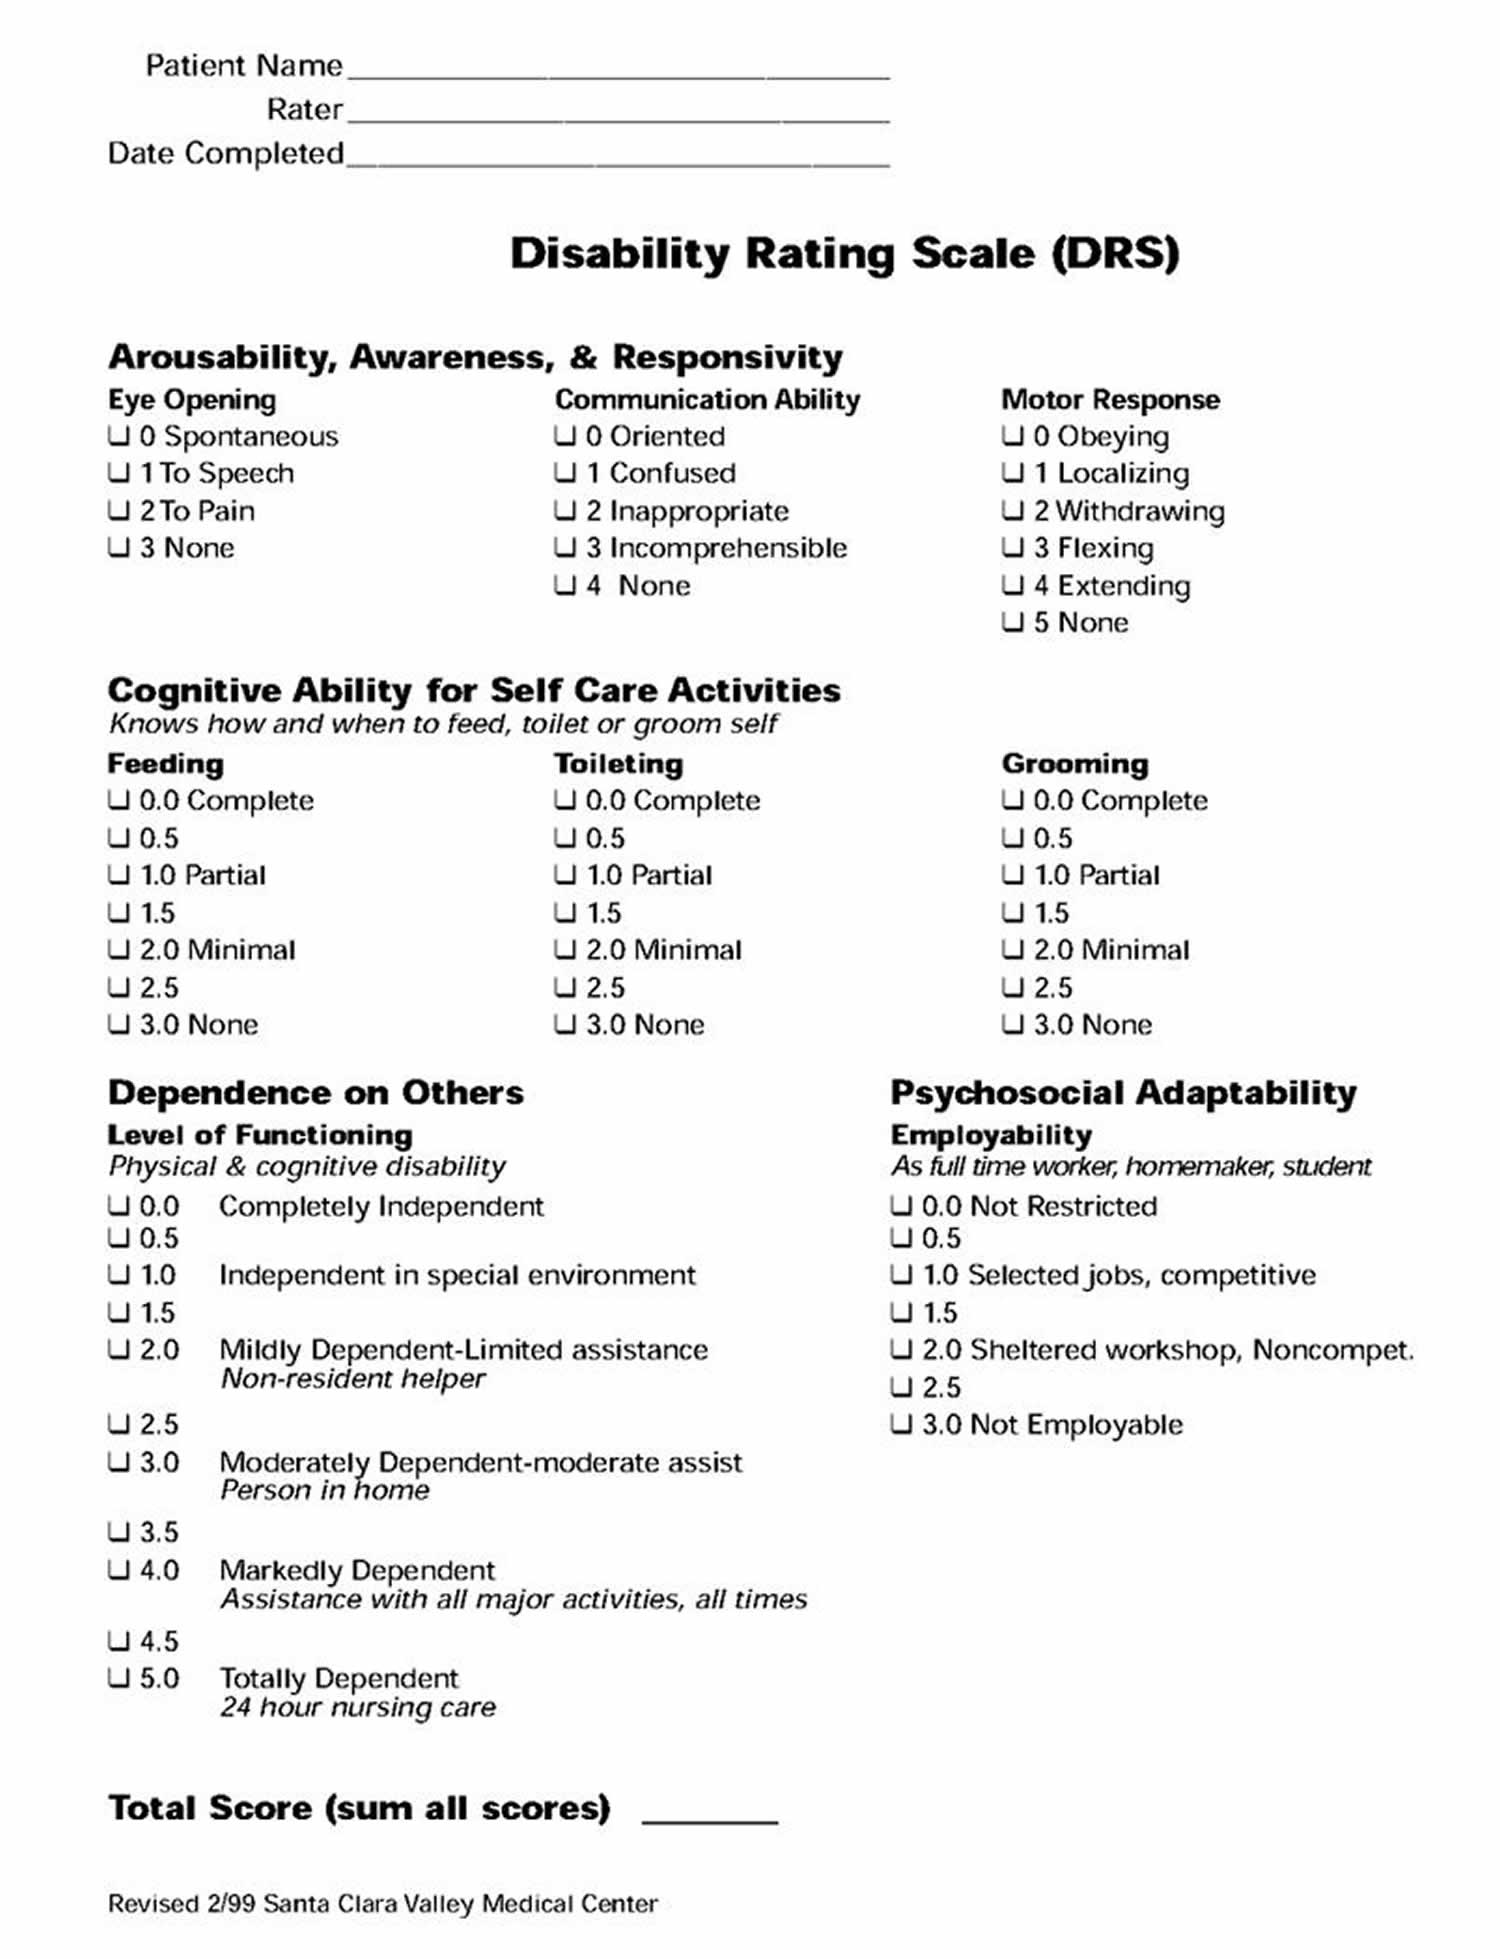 Disability rating scale